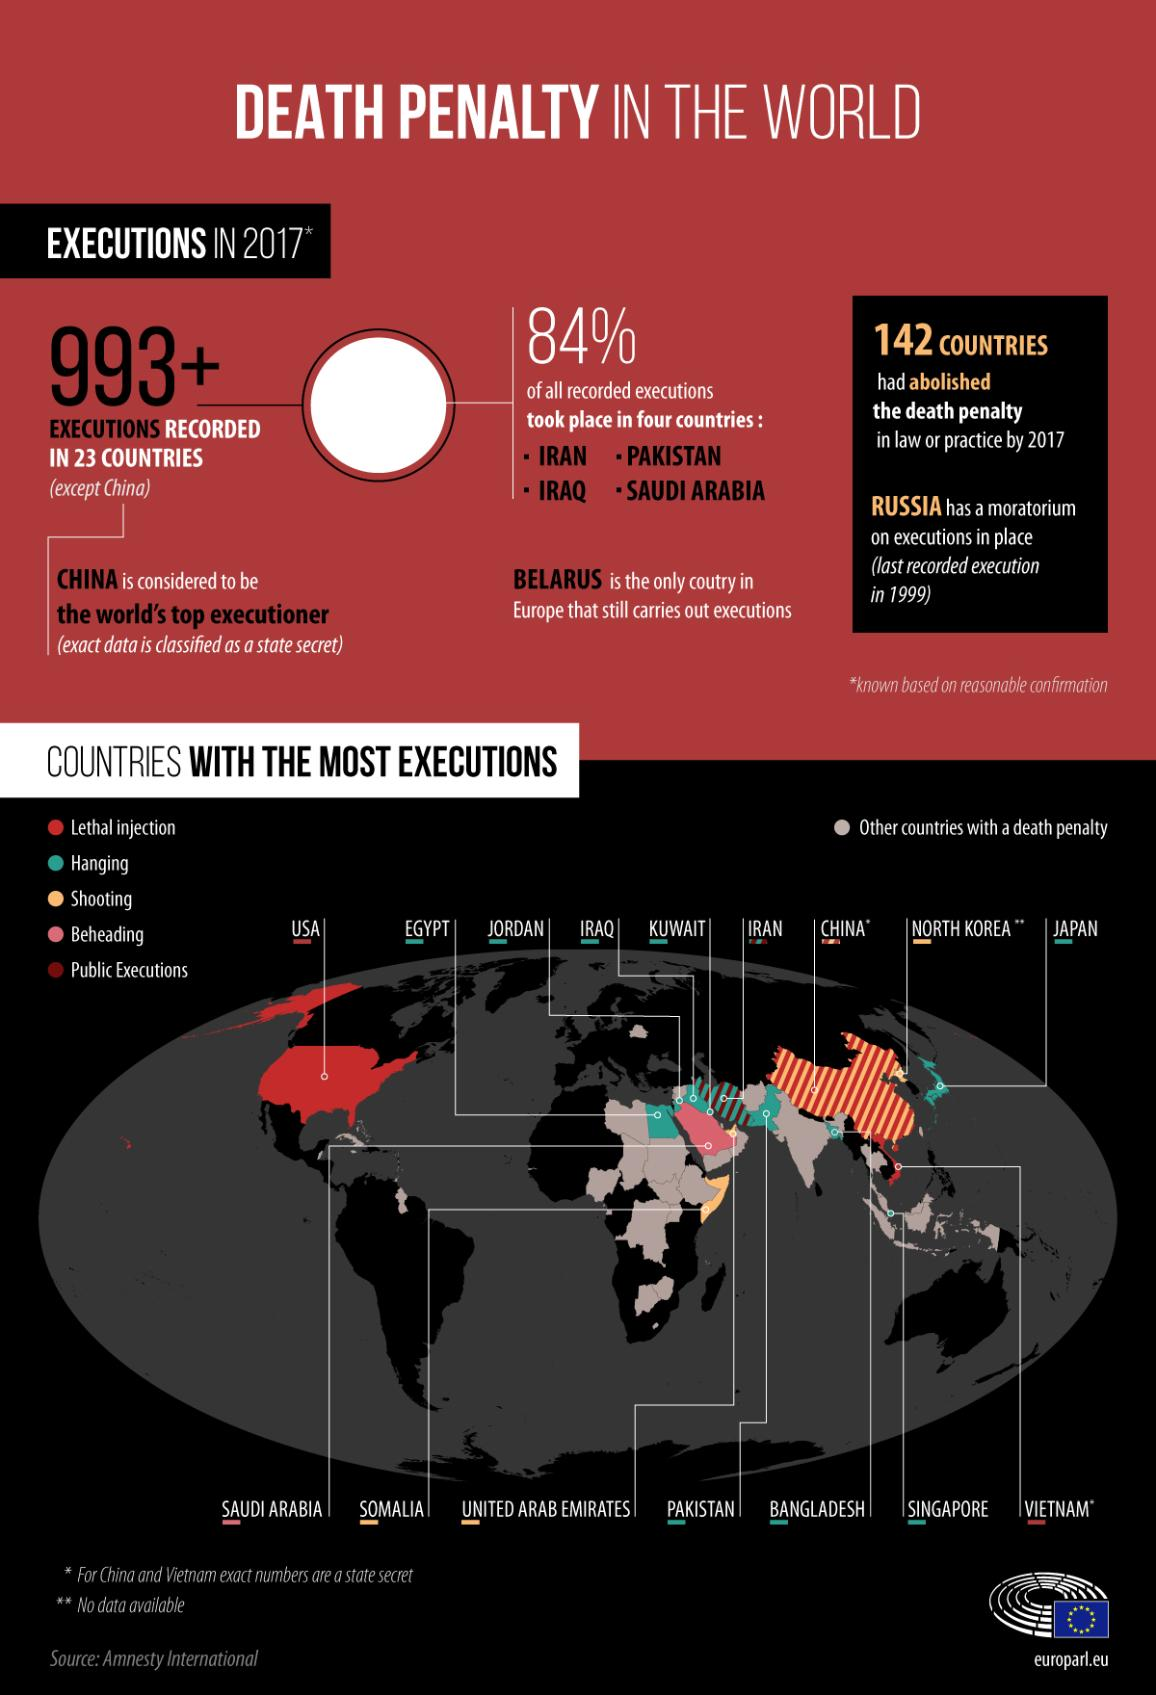 Infographic on death penalty in the world